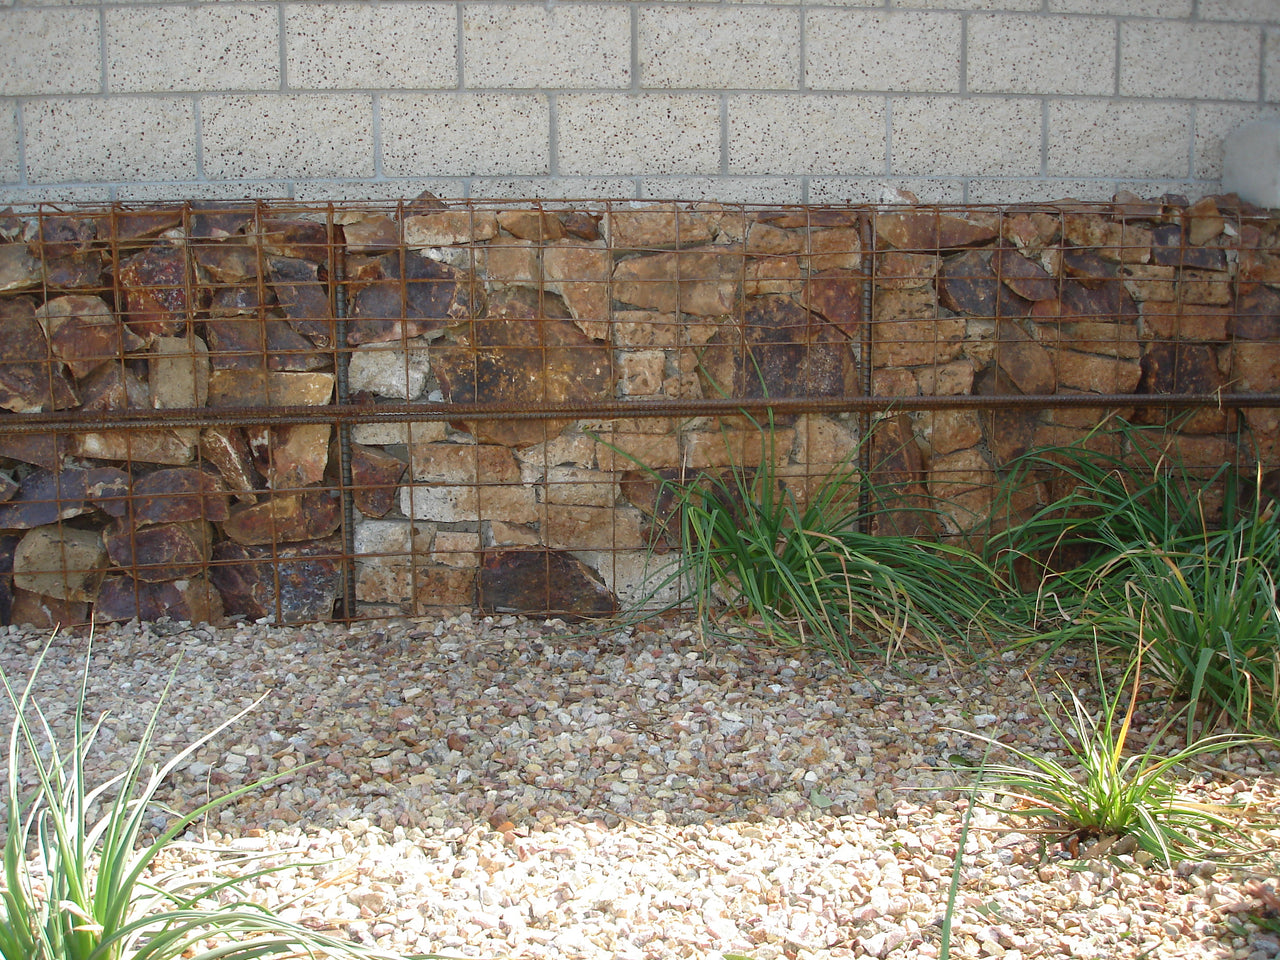 Gabion Stone Wall along with decorative stones with plants